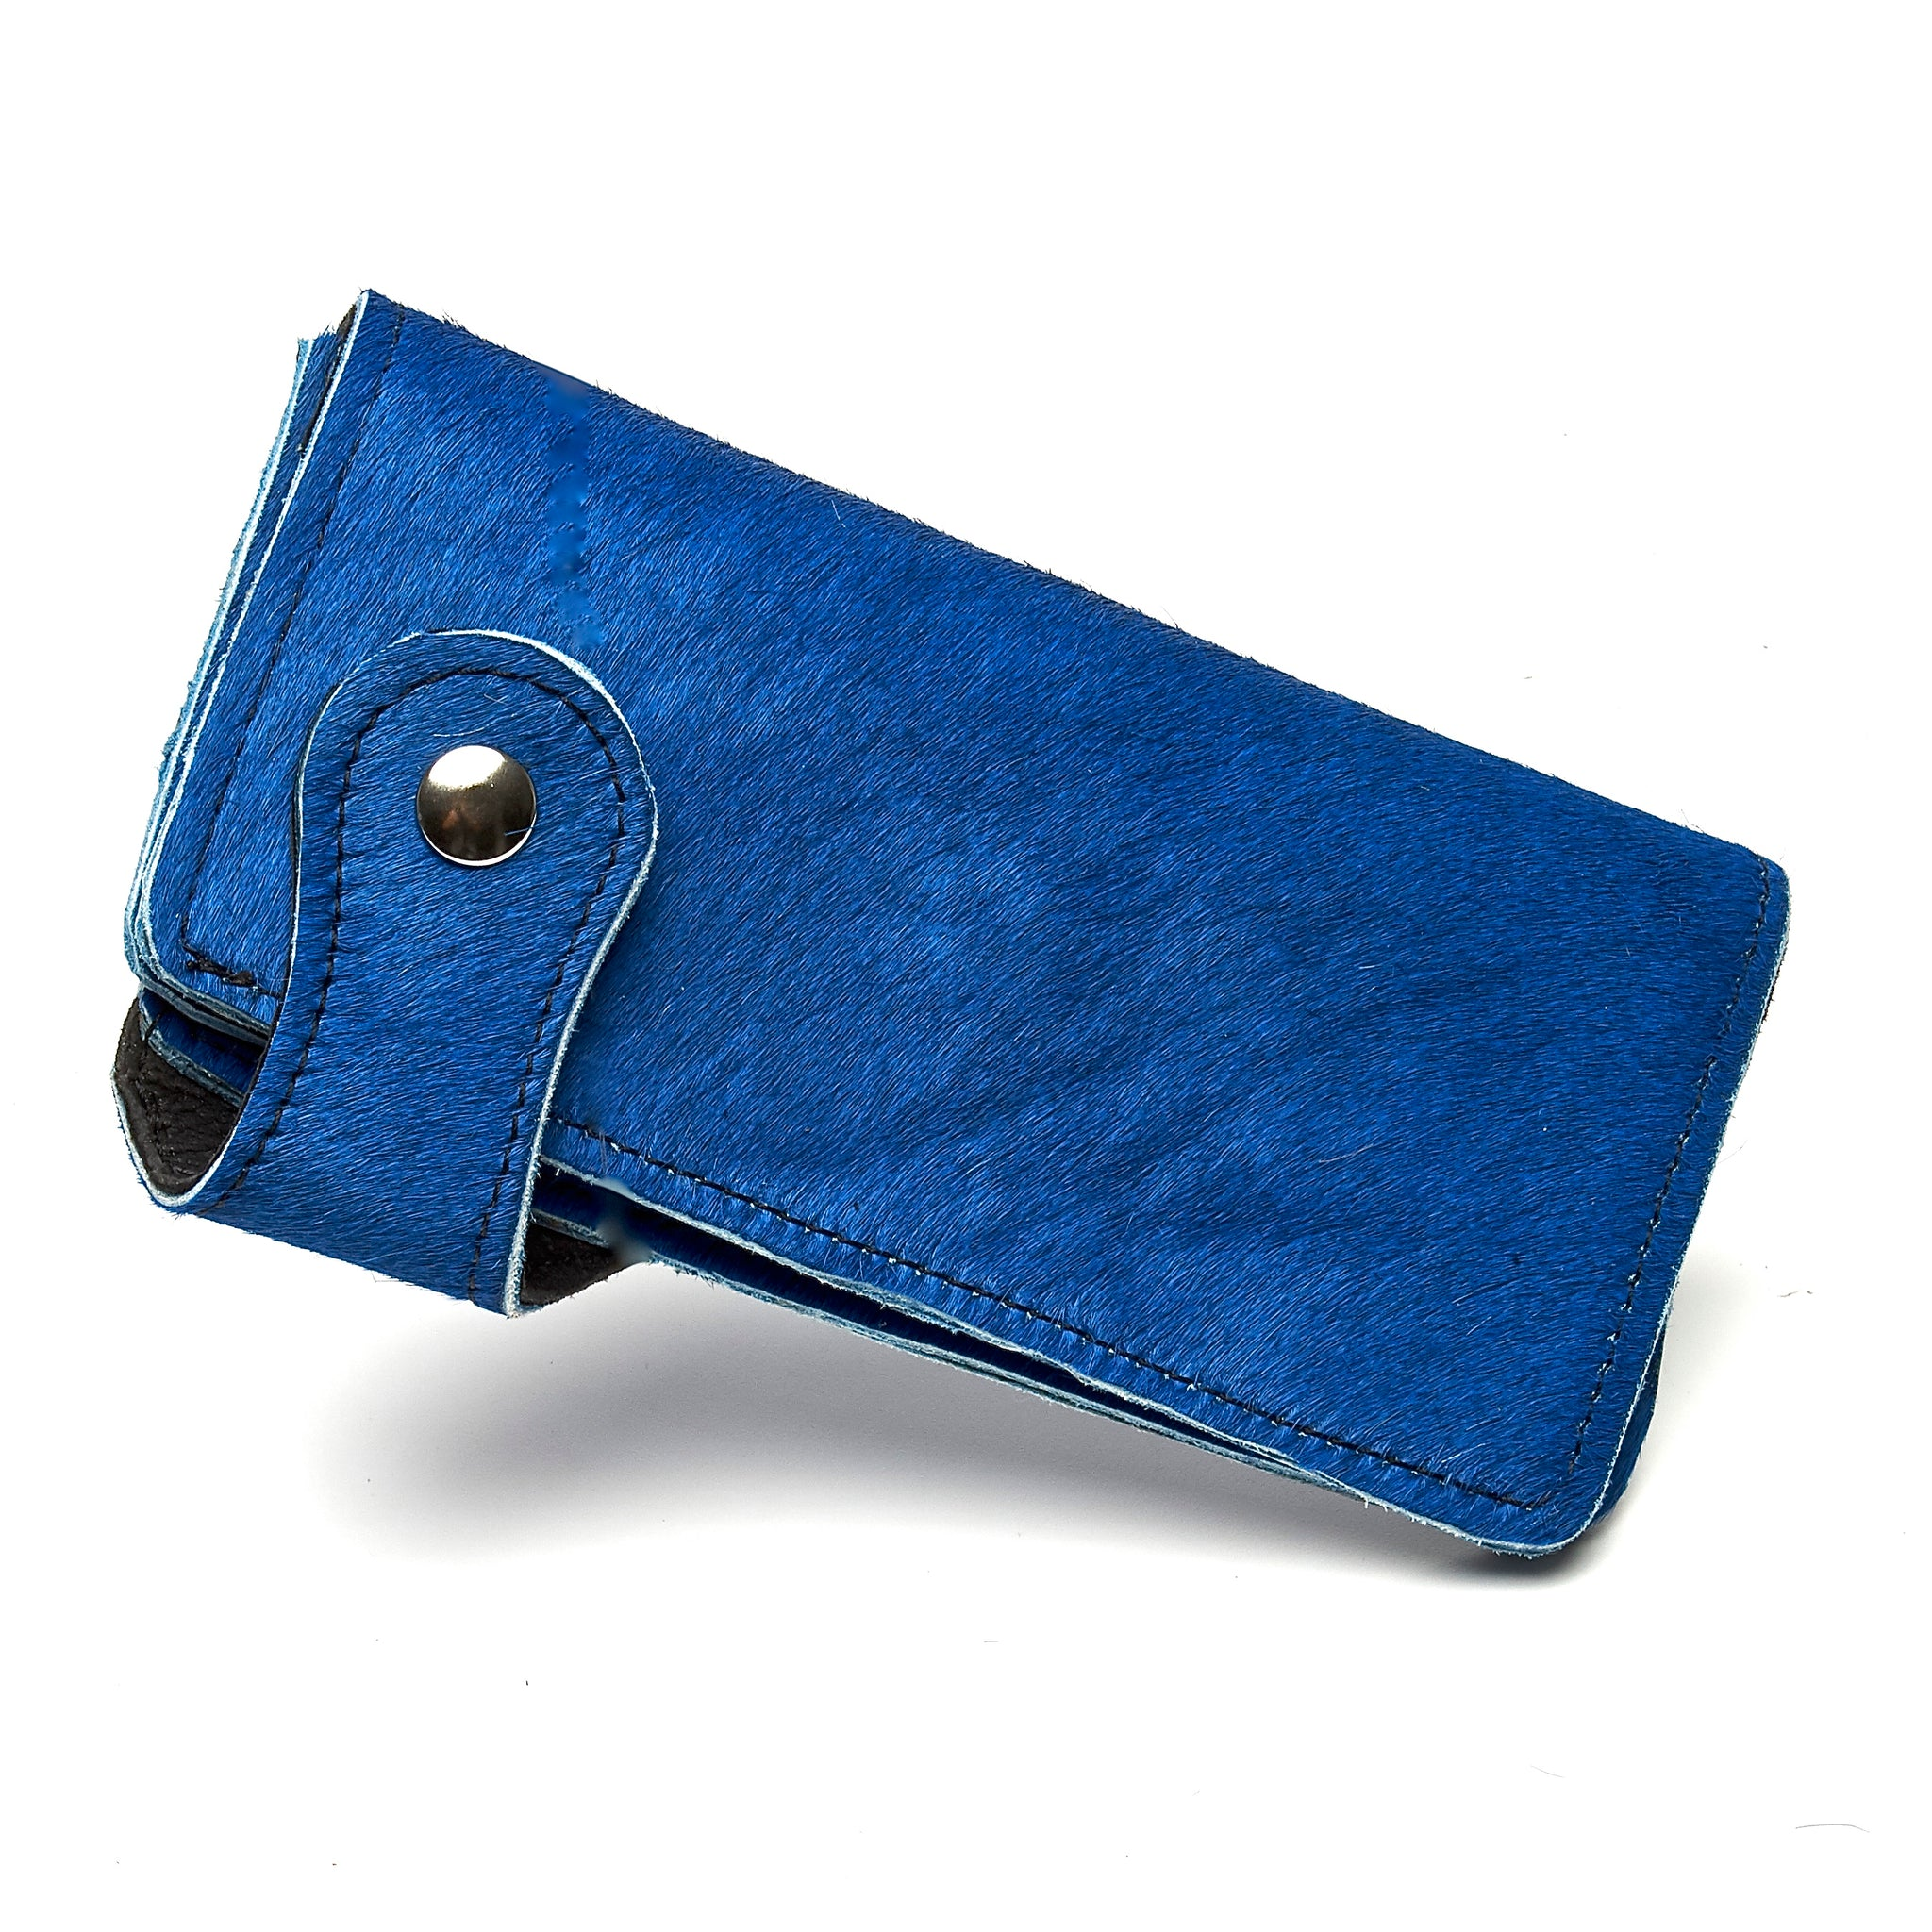 COBALT BLUE HAIR-ON COWHIDE BIKER WALLET. by nyet jewelry.